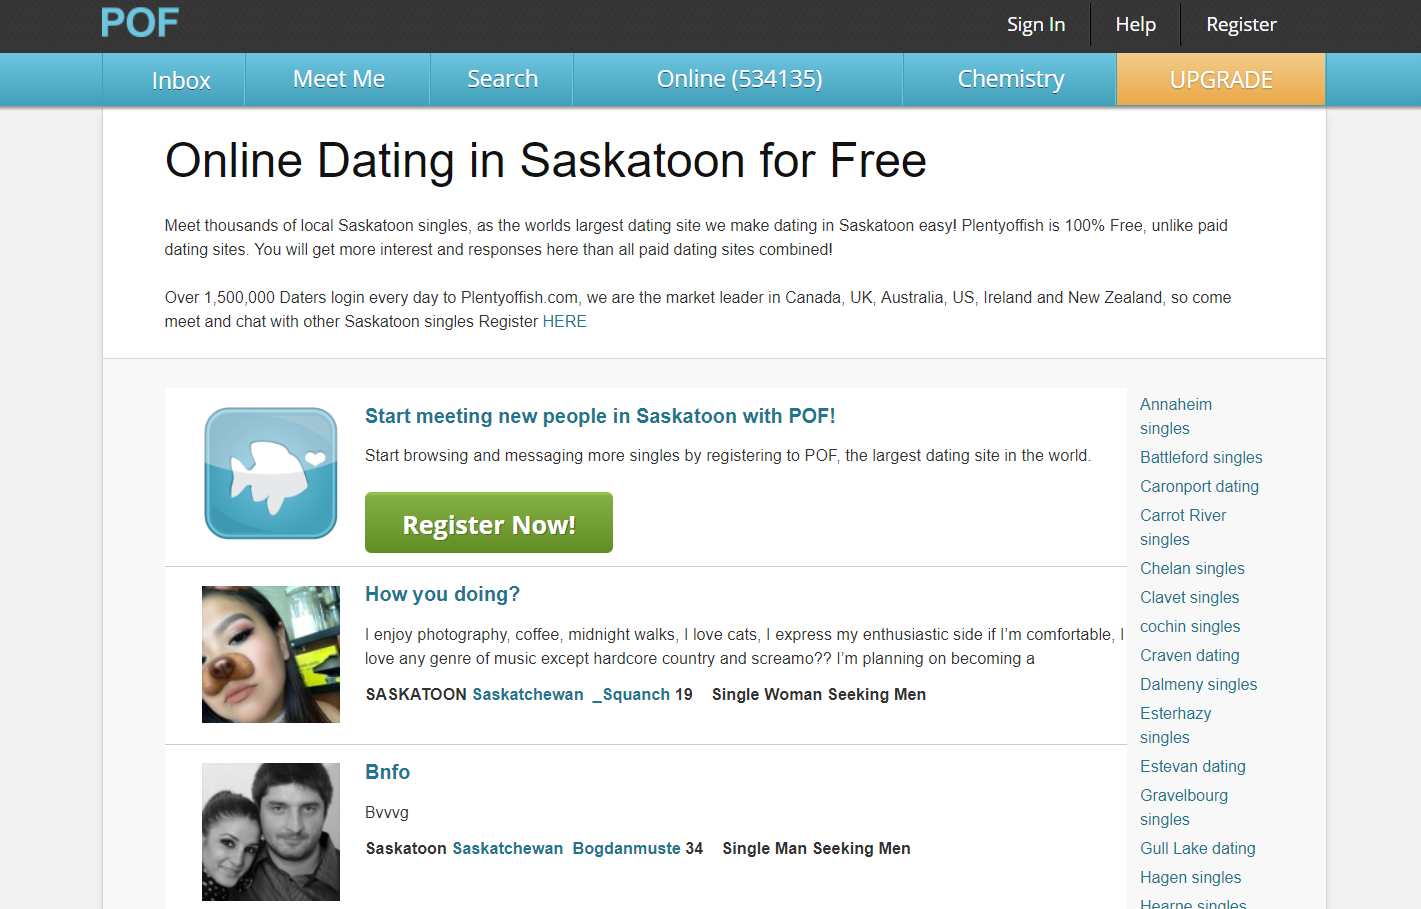 free dating in saskatoon Proofread the online dating profile there is no greater diversion than to find spelling errors in an online dating profile saskatoon singles a key to meet someone from the internet is to make sure you meet in a public place.